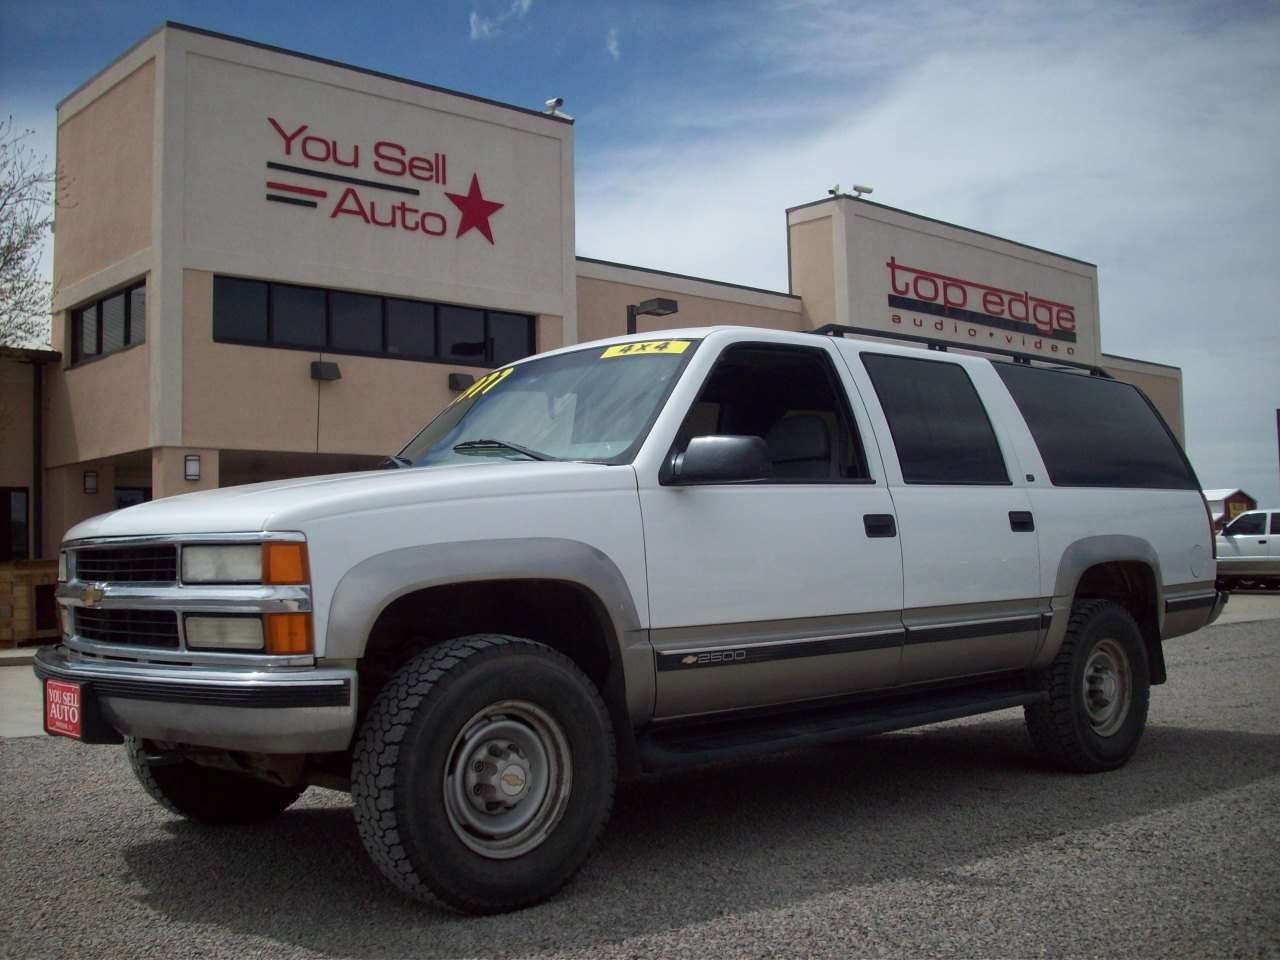 1999 chevrolet suburban 2500 lt sold you sell auto. Black Bedroom Furniture Sets. Home Design Ideas